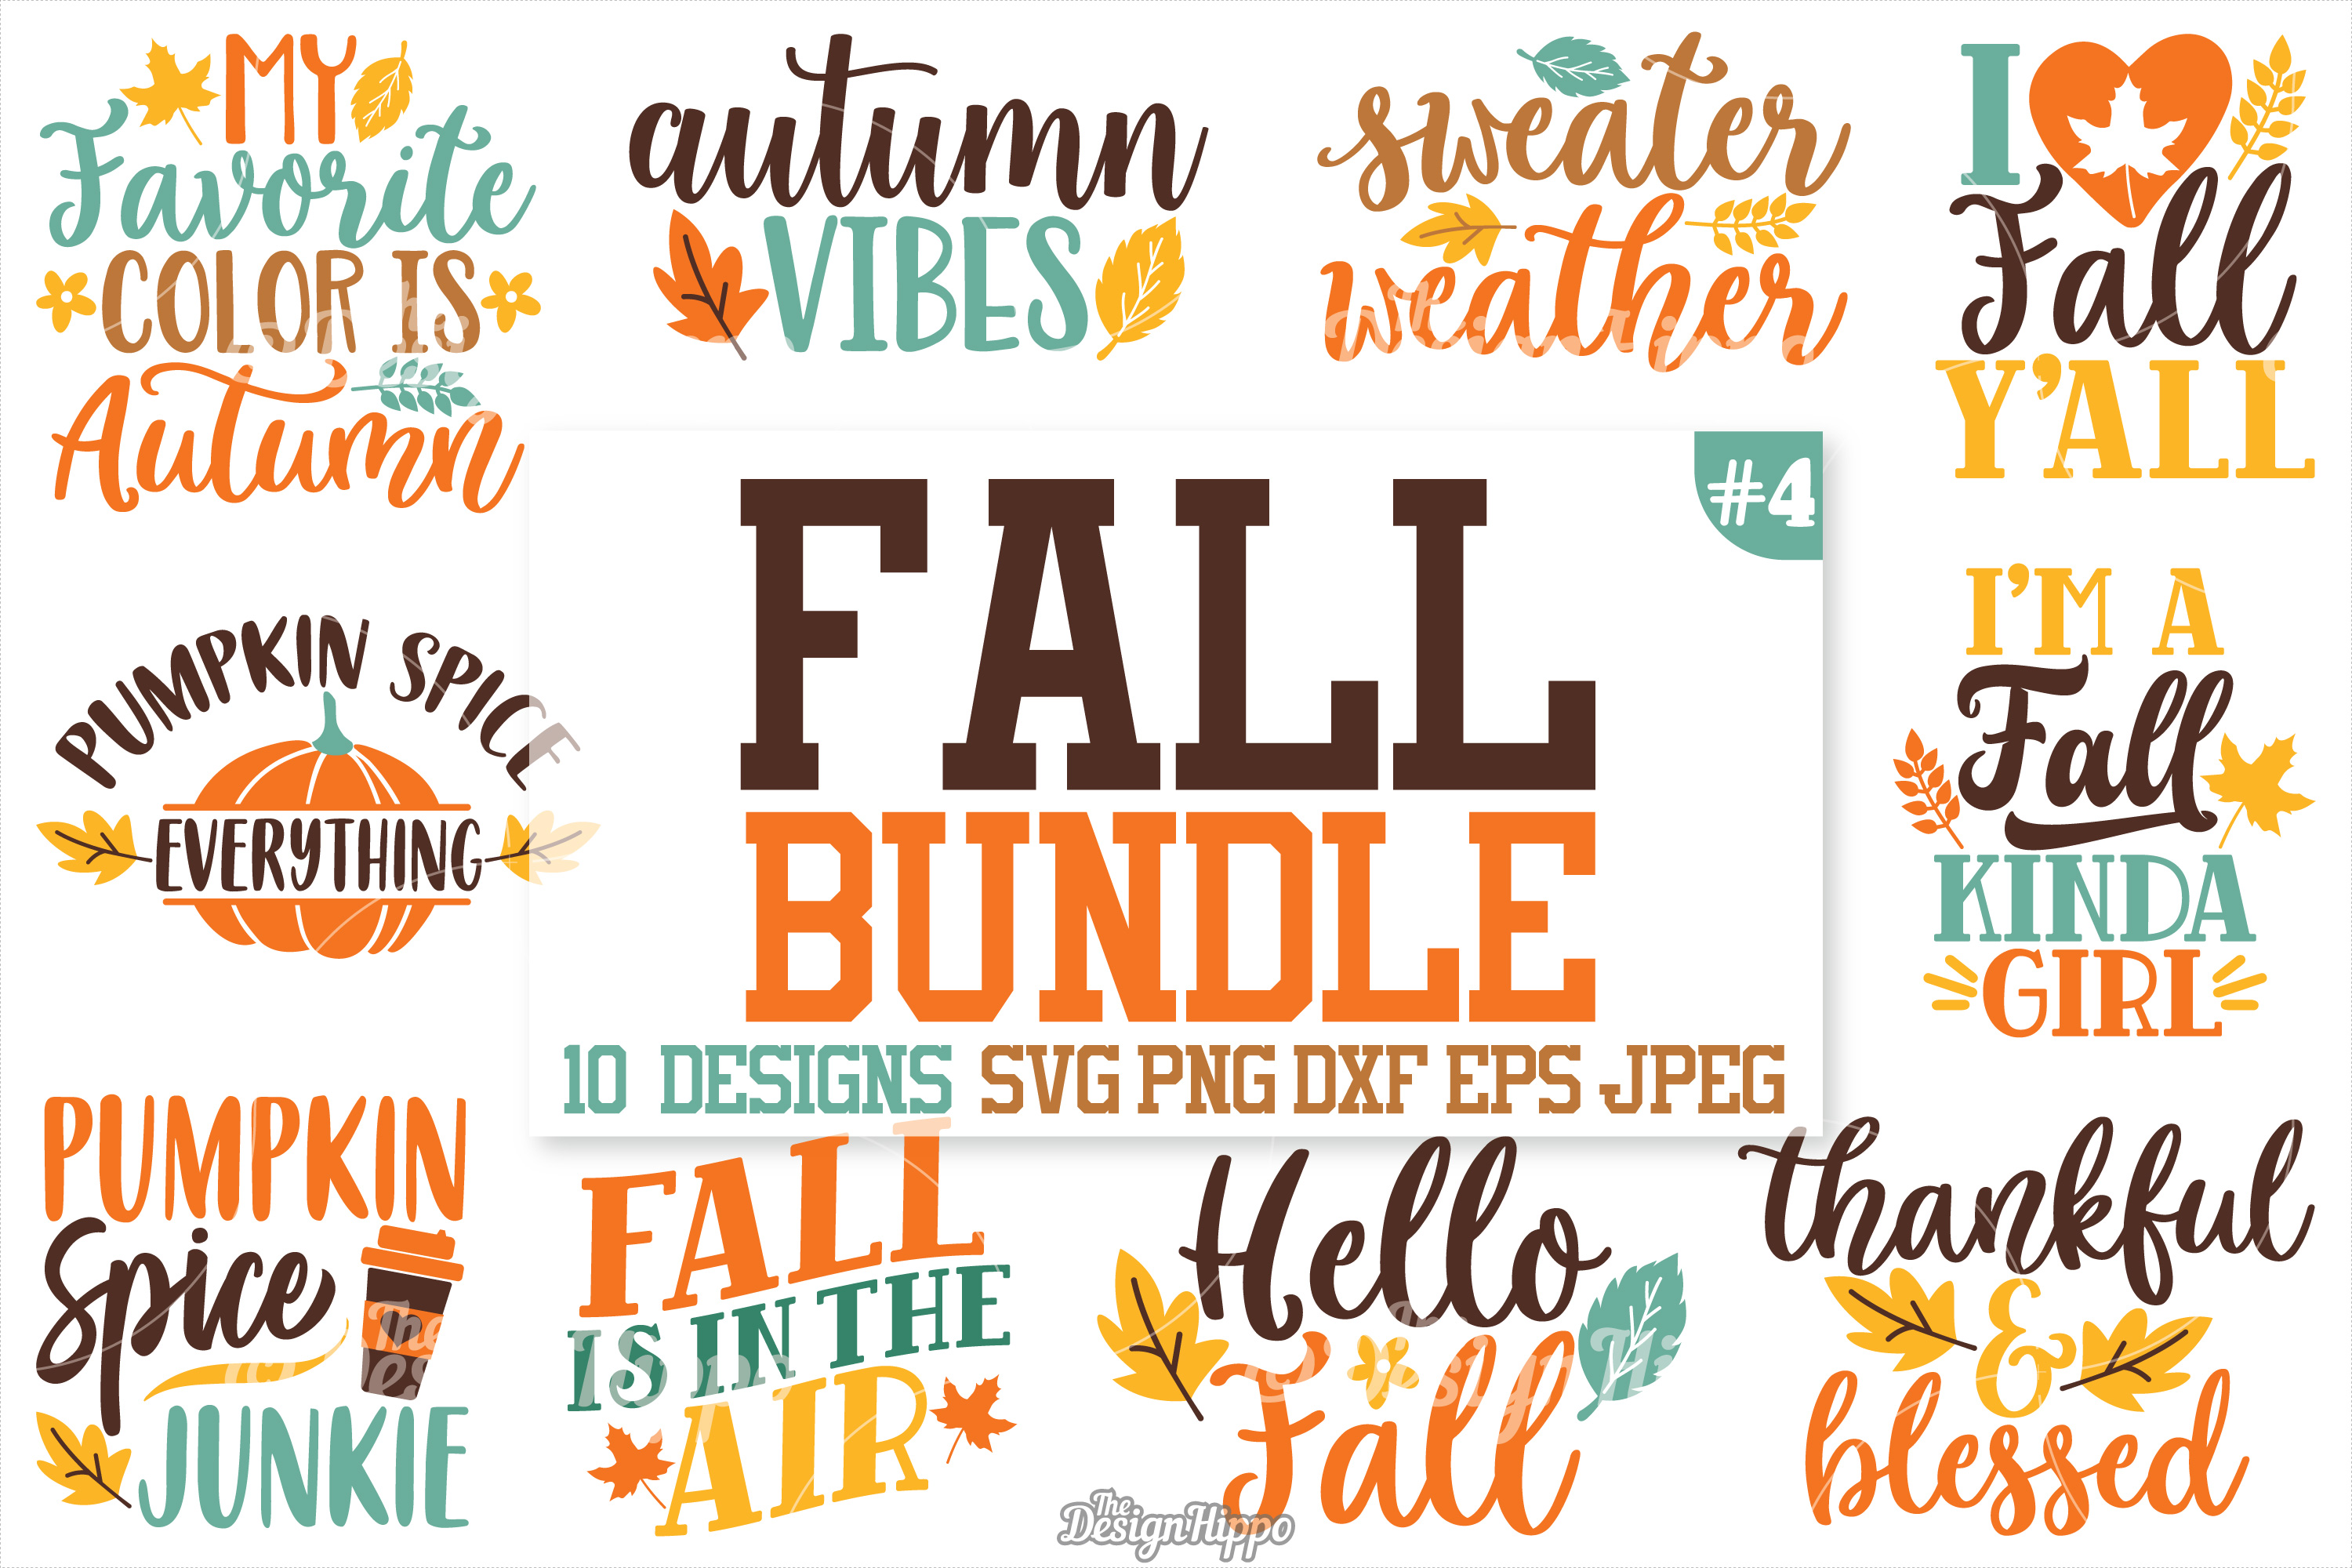 Fall Sayings SVG Bundle, Autumn, Pumpkin, Quotes, Signs, PNG example image 1